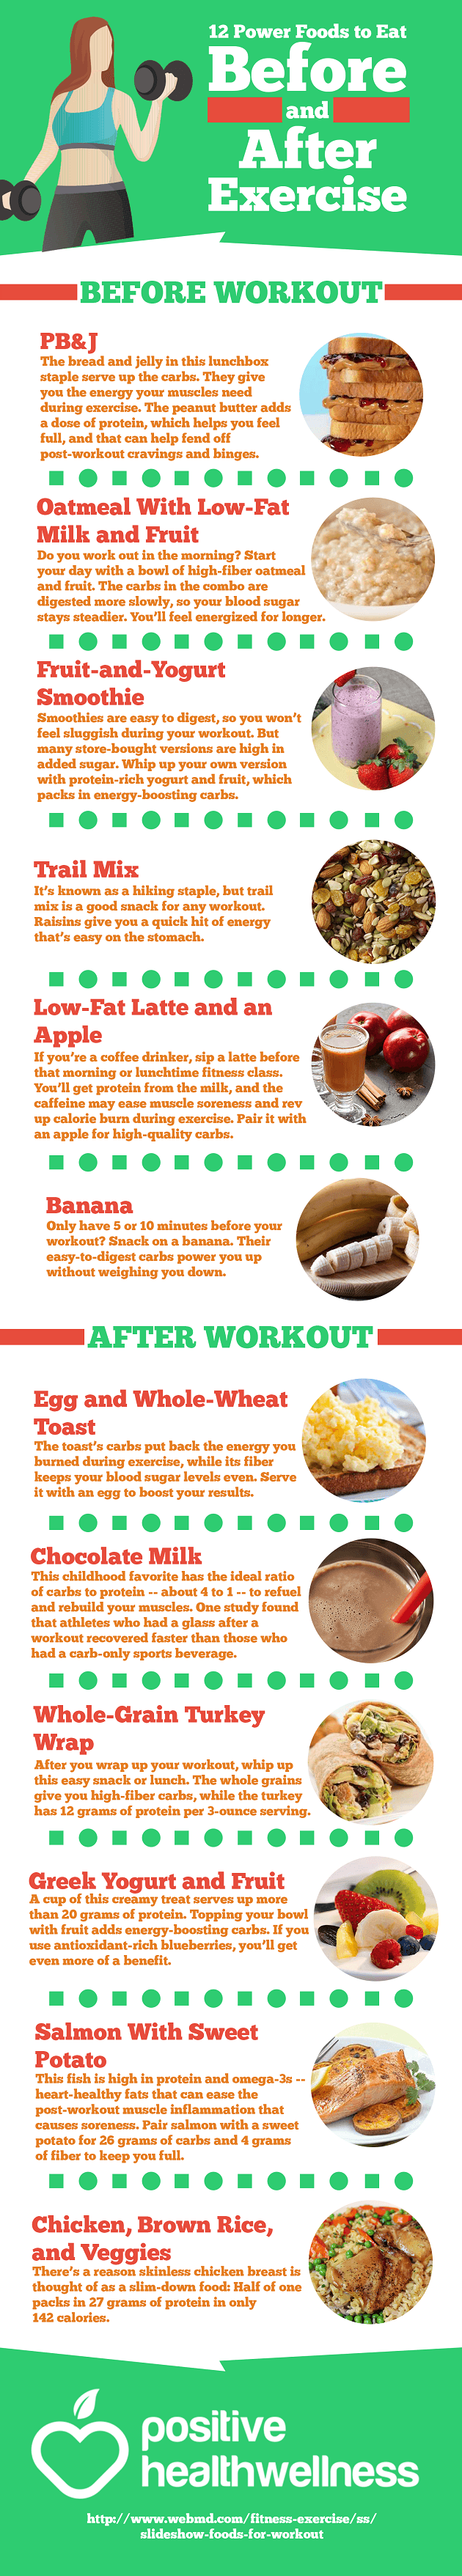 12 Power Foods to Eat Before and After Exercise